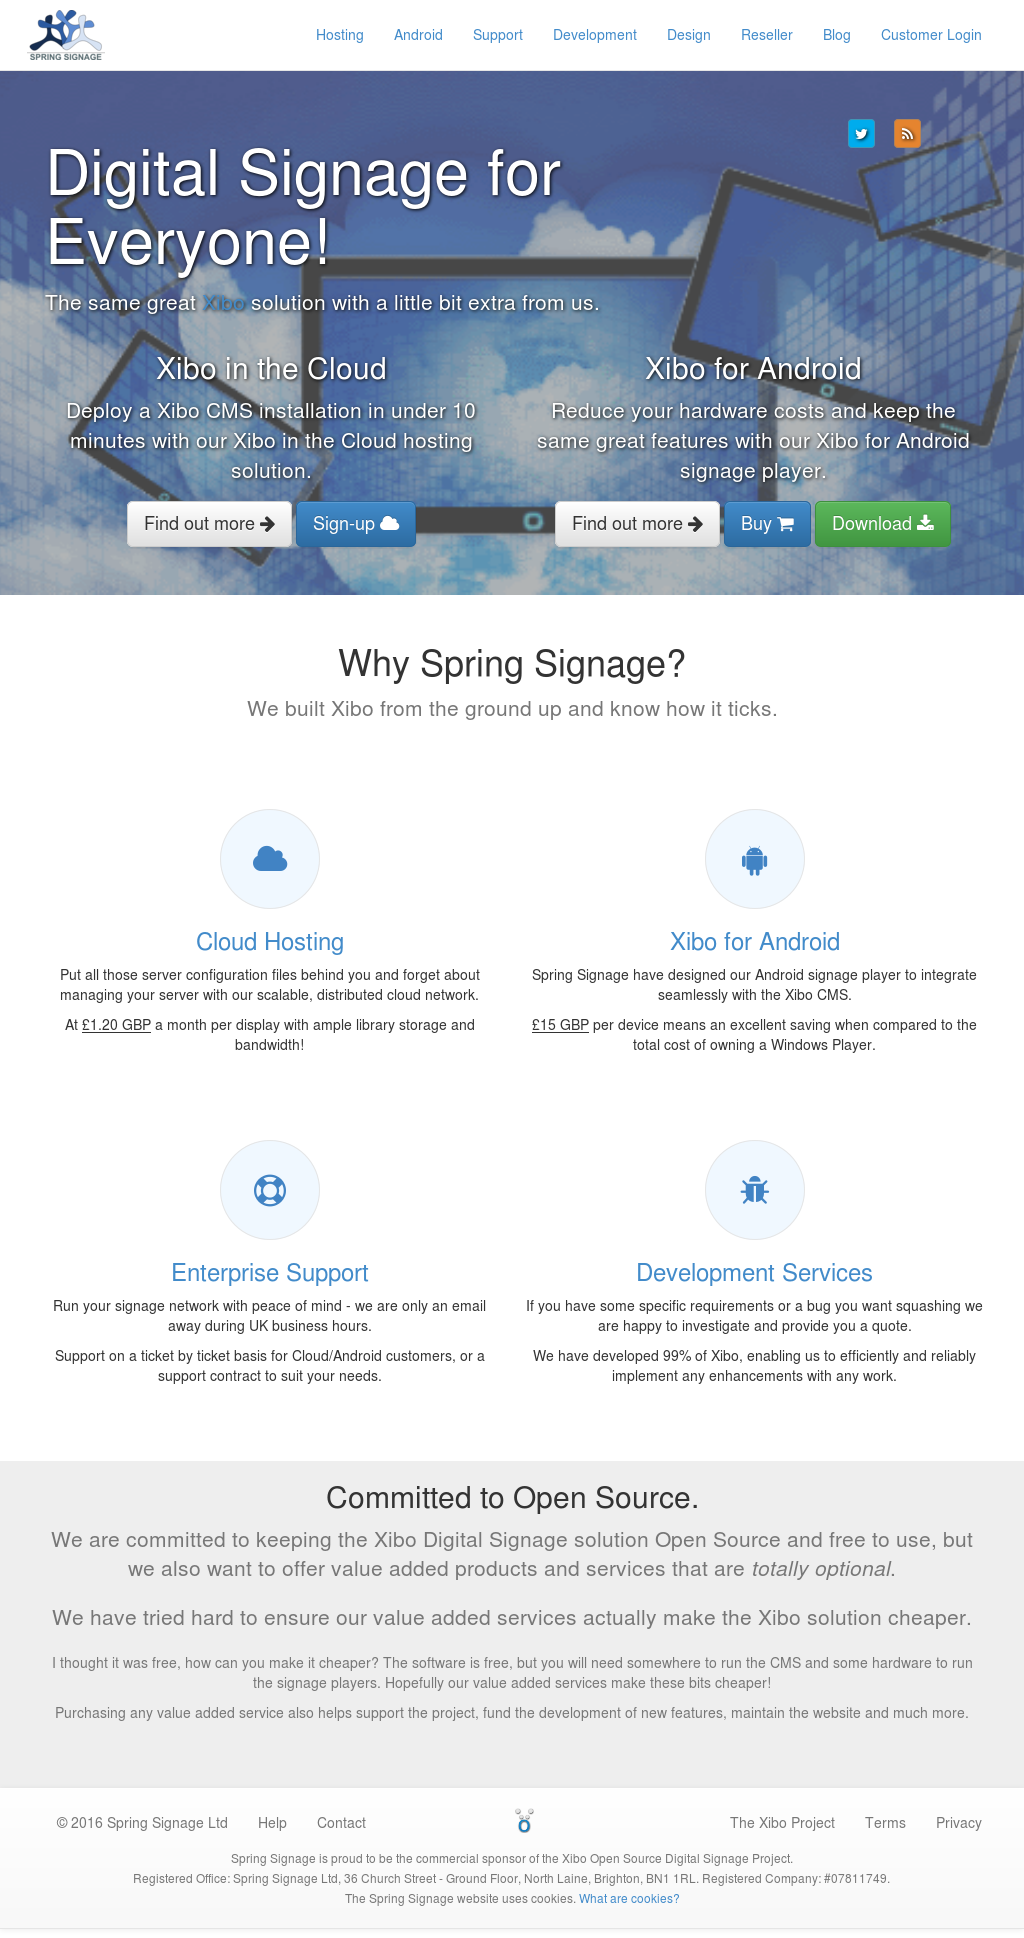 Spring Signage Competitors, Revenue and Employees - Owler